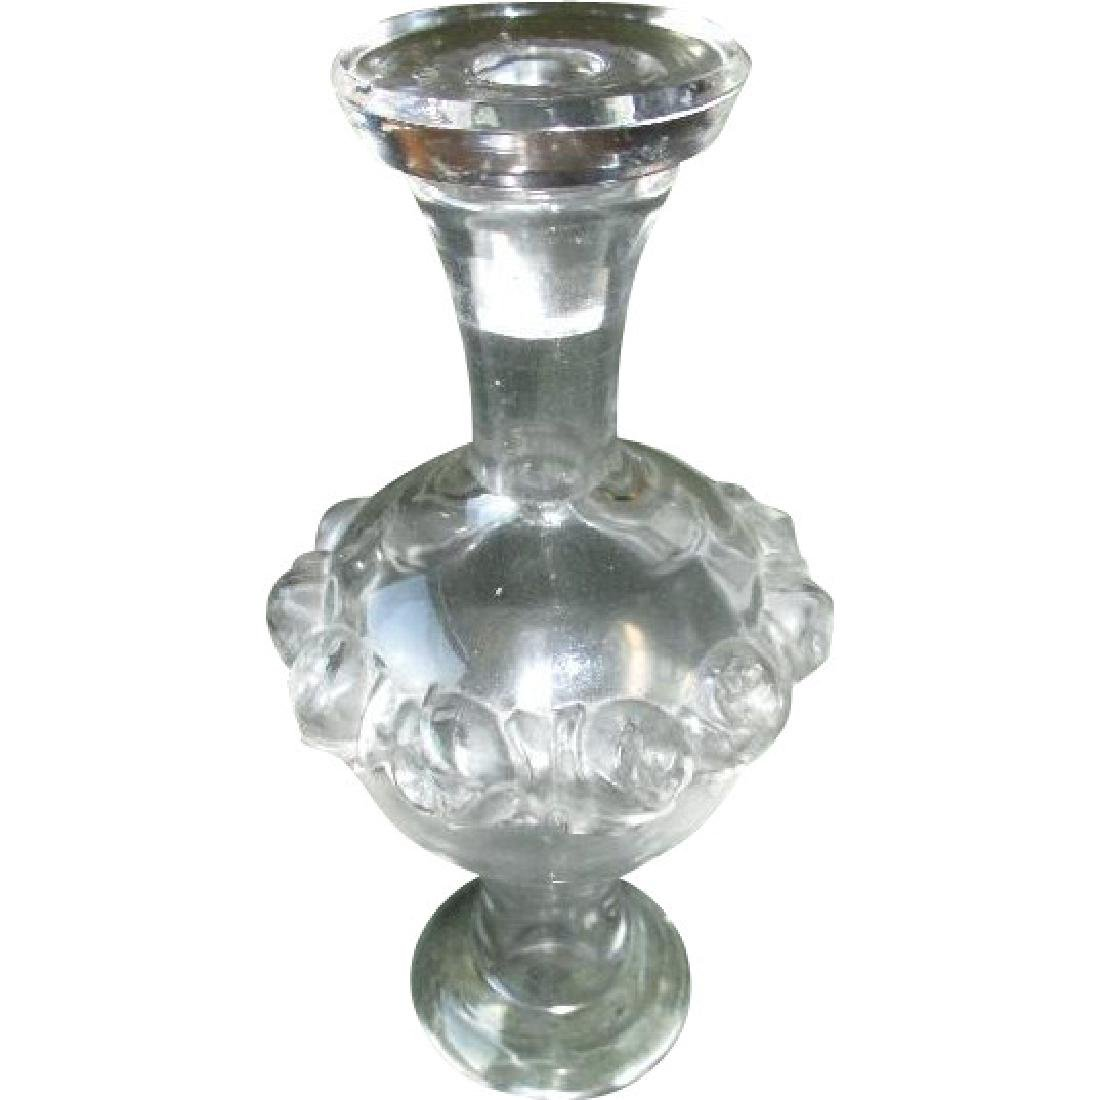 Gorgeous Lalique Perfume Bottle with Roses